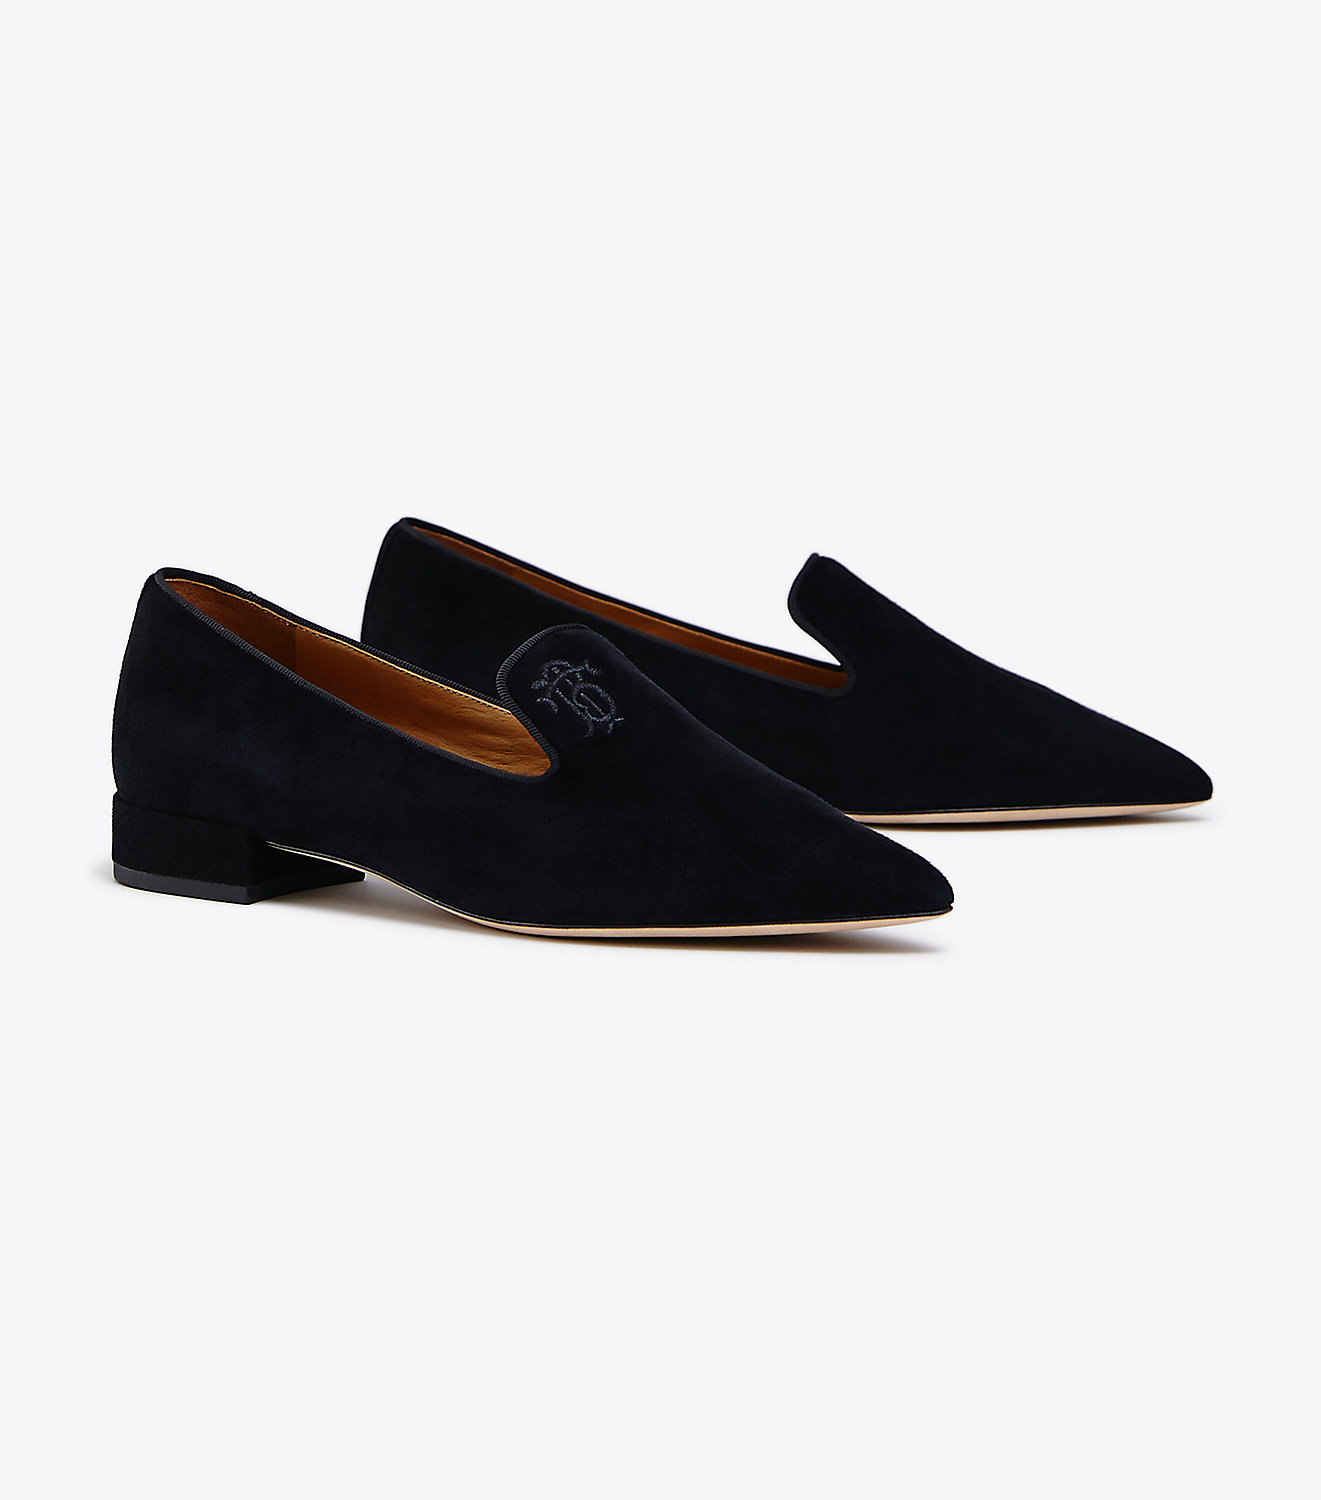 Suede Smoking Slipper